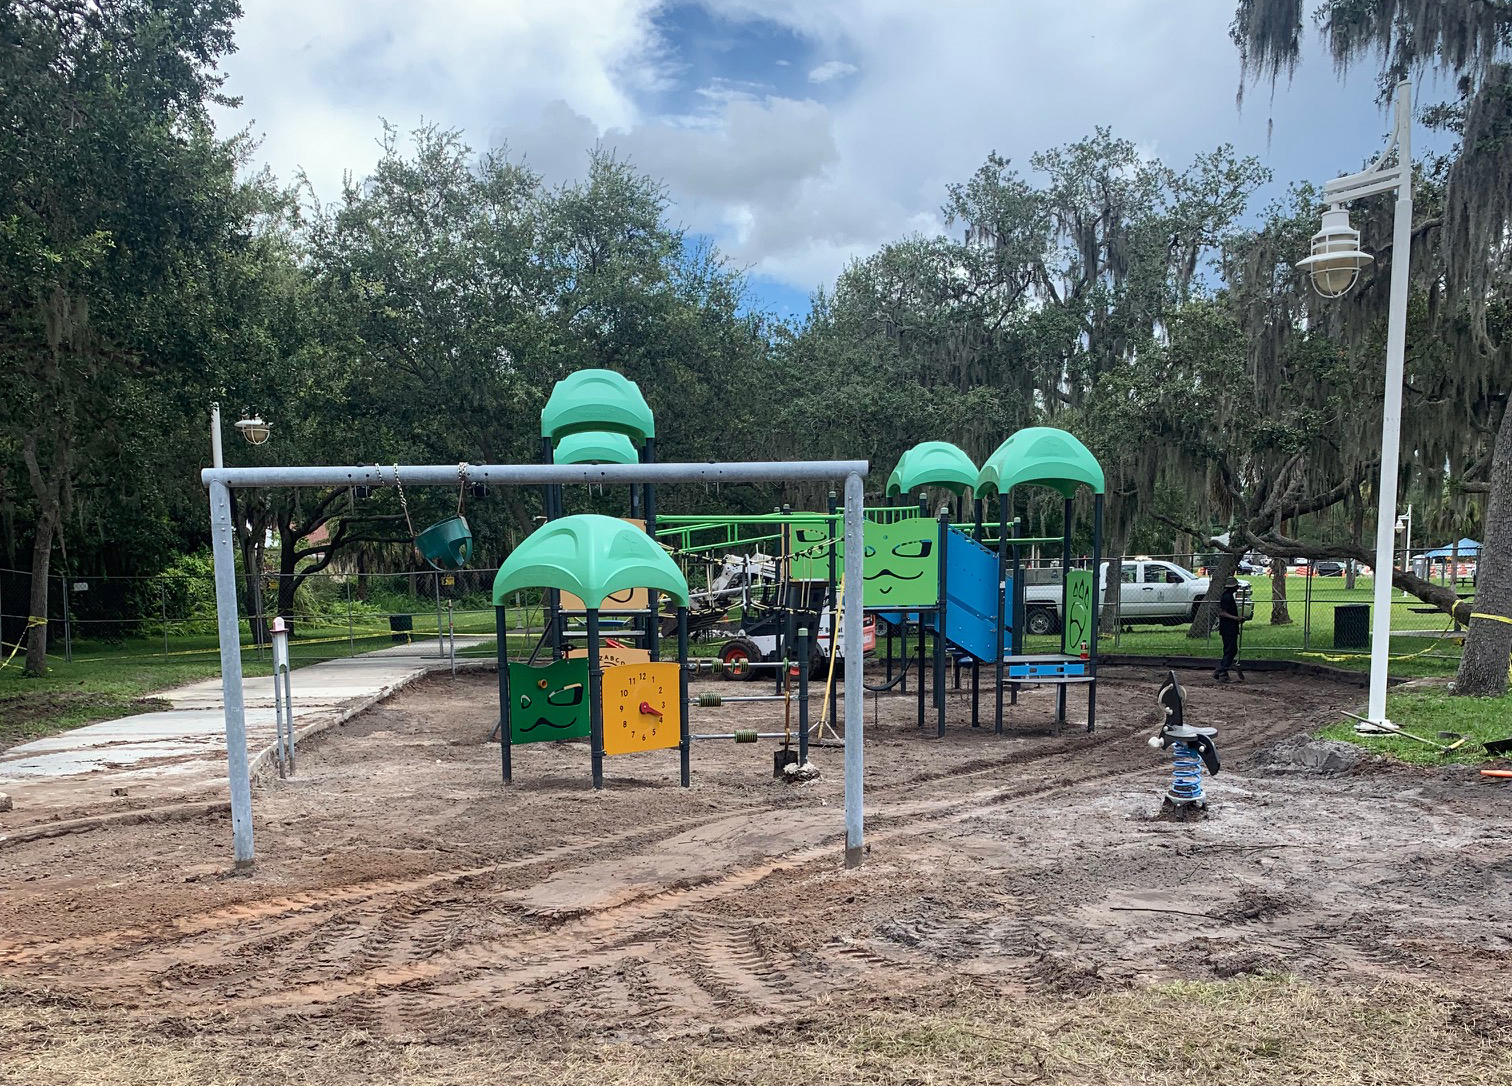 Playground with surface removed on the ground with dirt. Playground is yellow blue green and black with a slide and swings on a cloudy day.